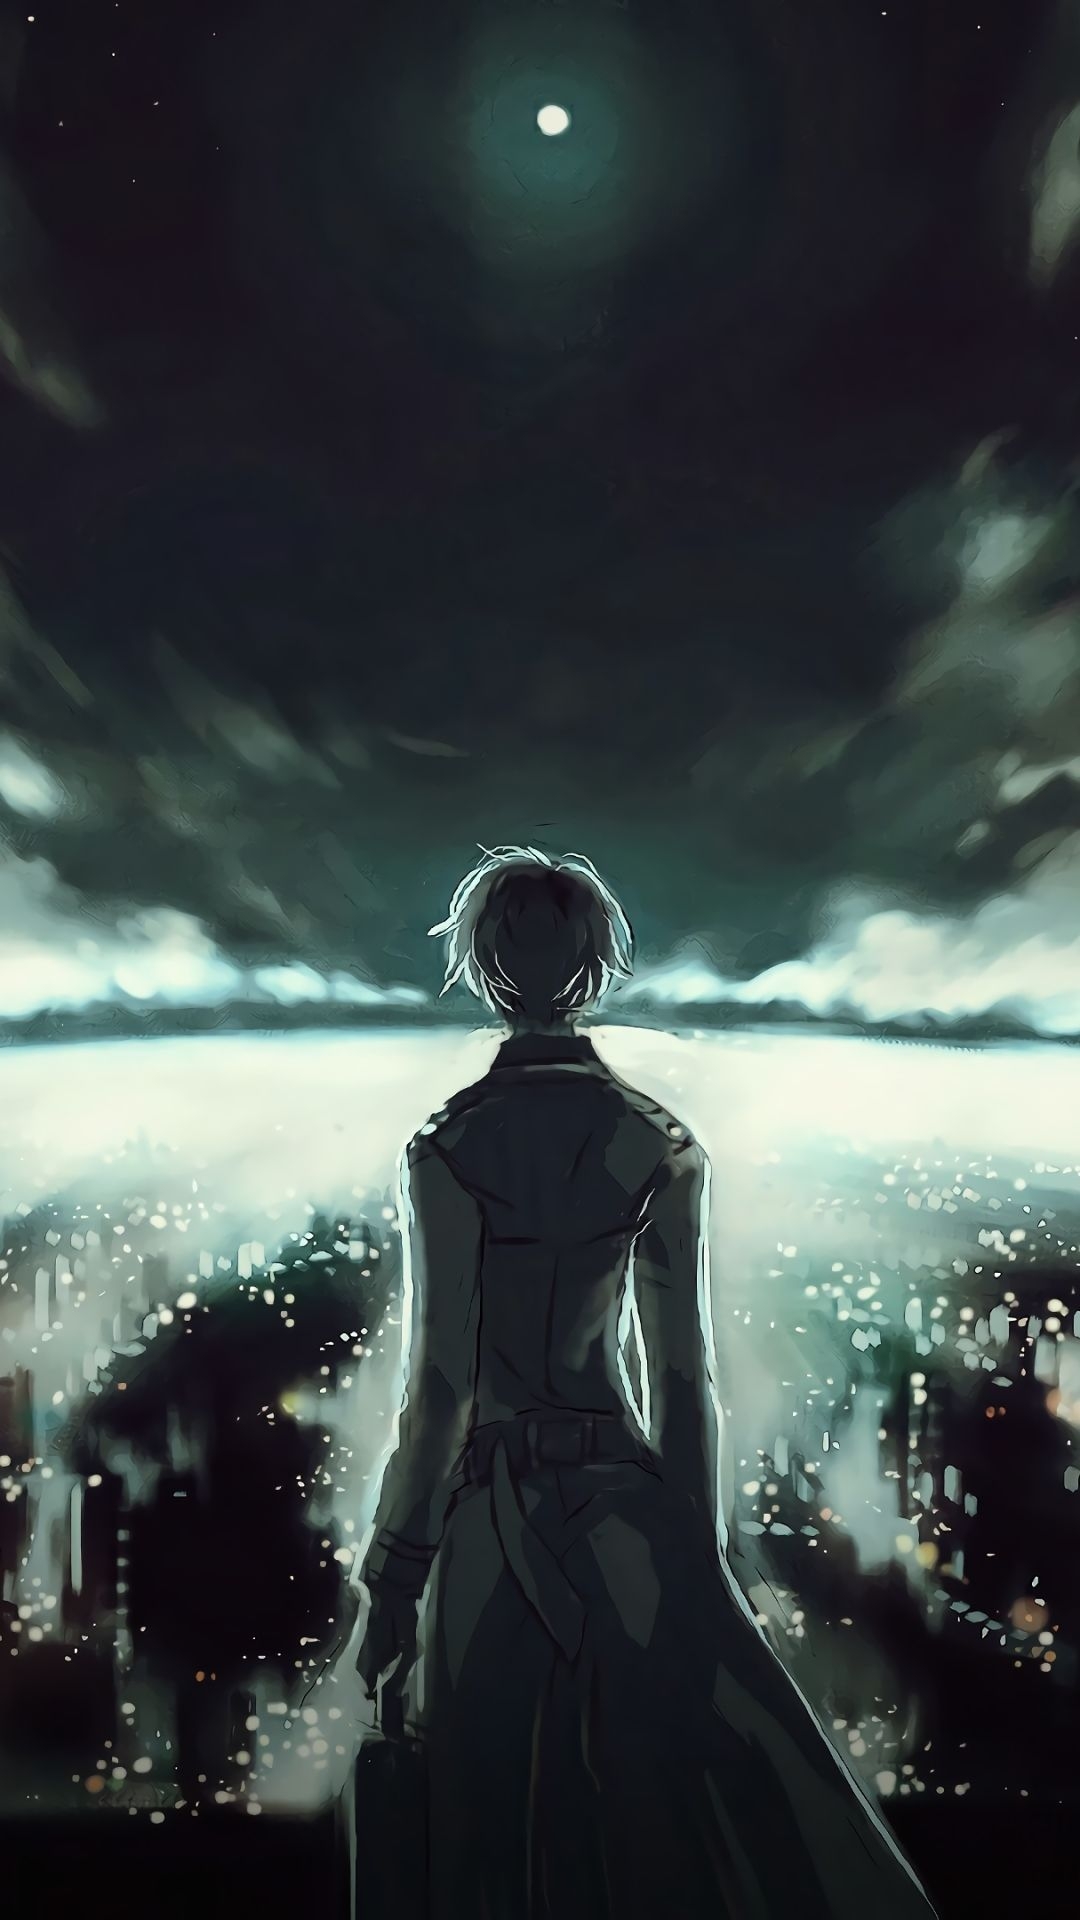 download this wallpaper anime/tokyo ghoul:re (1080x1920) for all